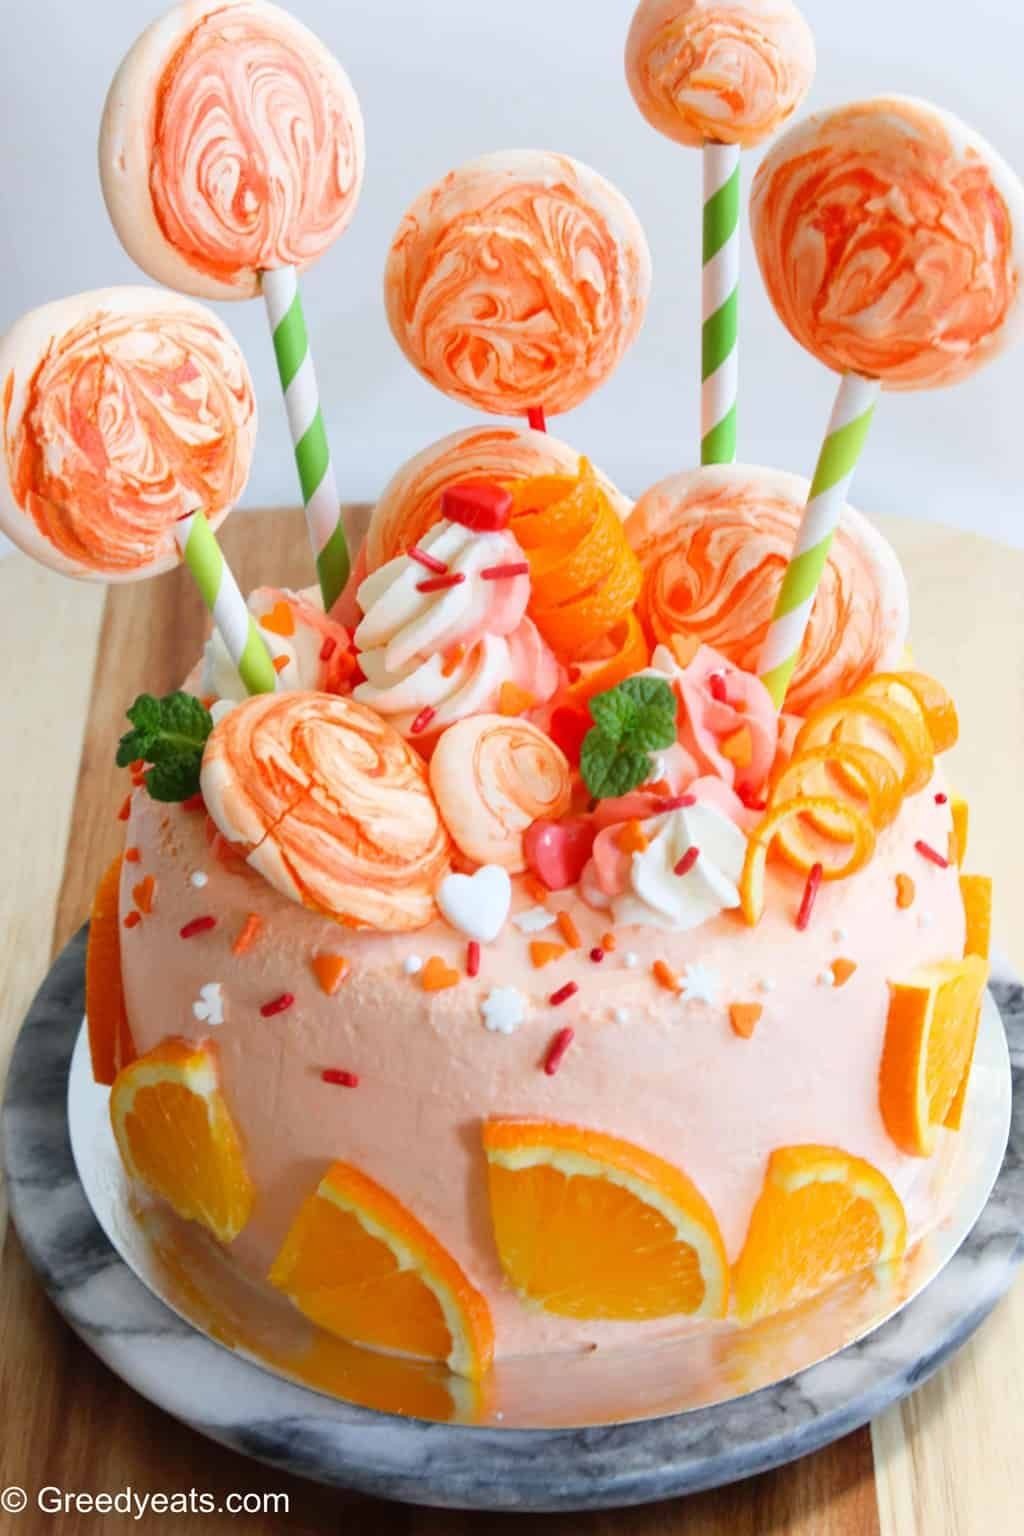 Easy summer dessert recipes-orange cake with orange frosting